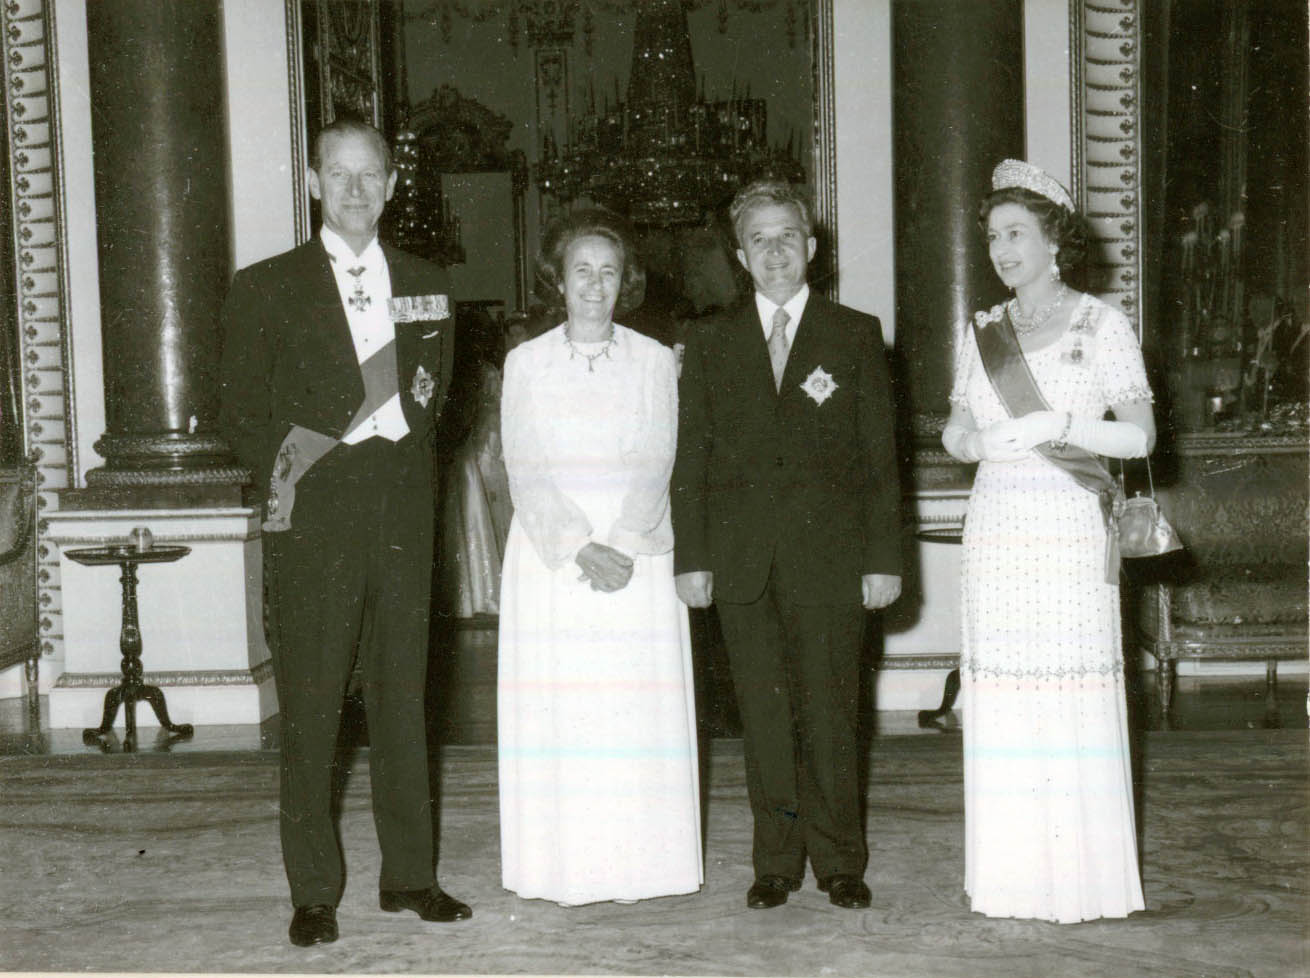 Ceauşescu with wife and Queen Elizabeth with Prince Phillip standing in a line for formal black and white photo